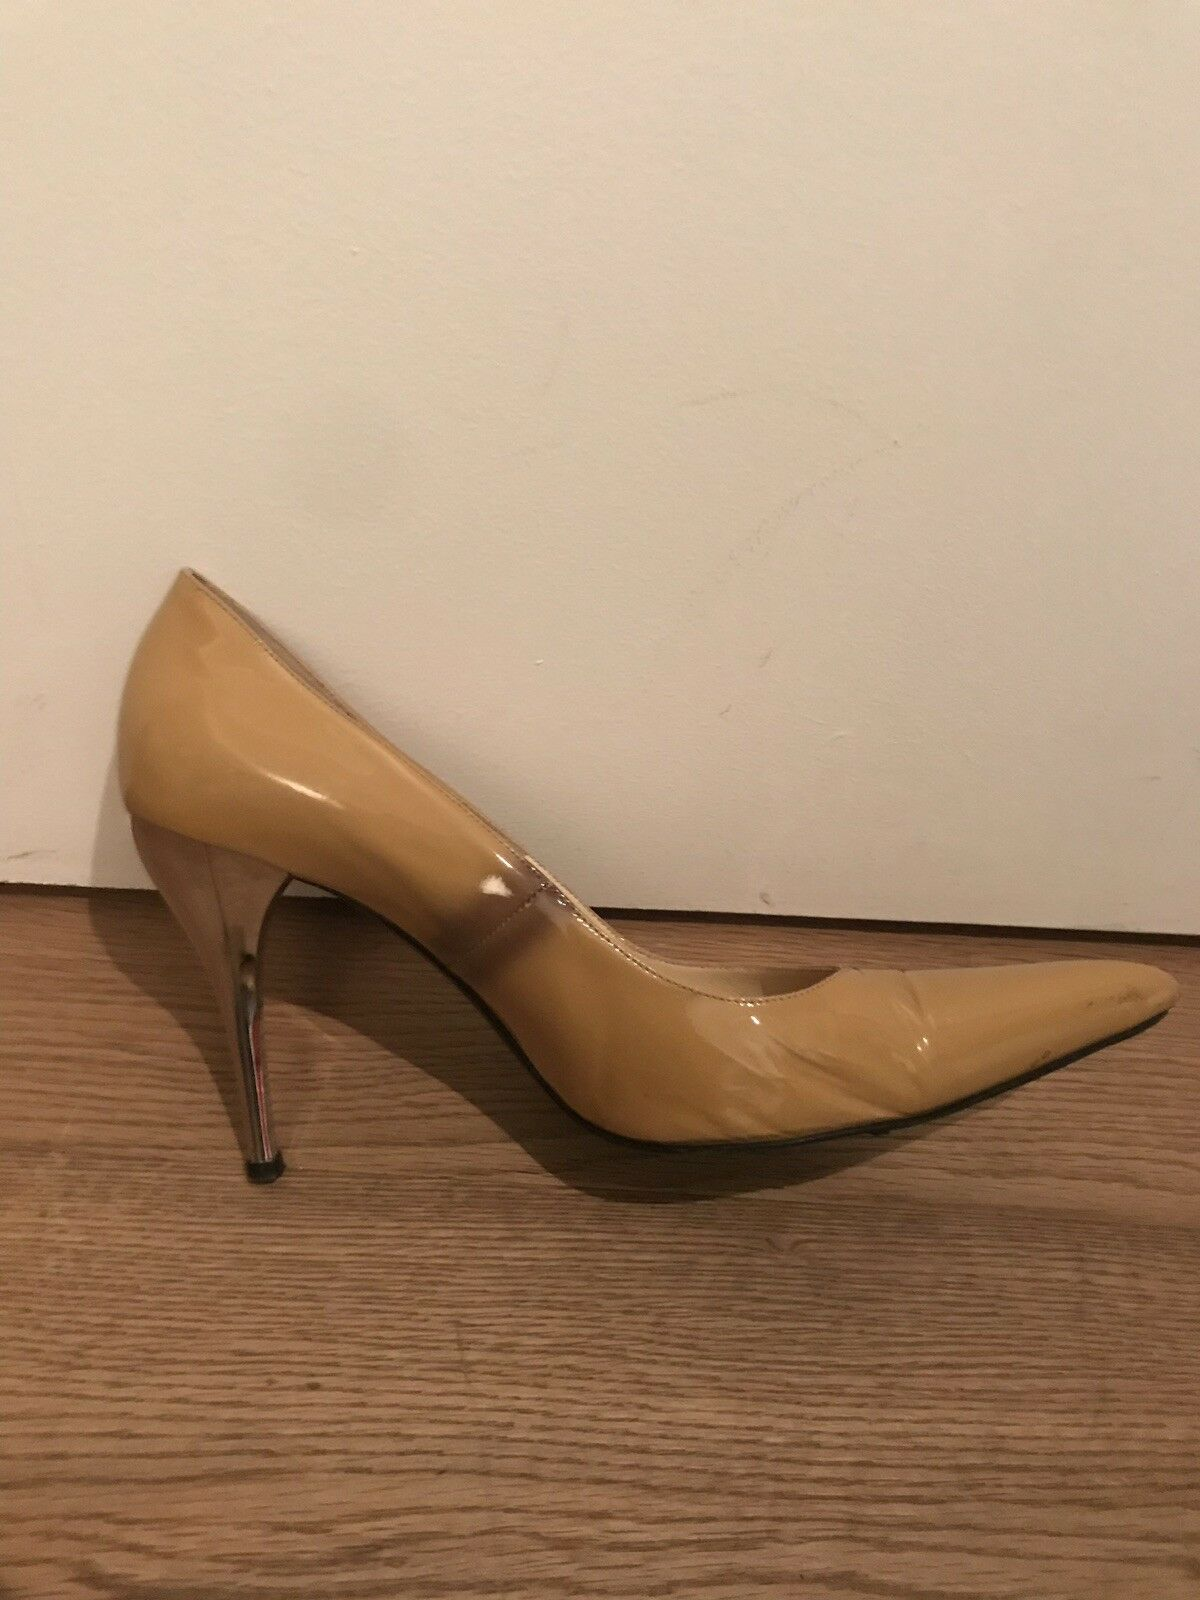 Versace Nude Patent court chaussures argent talons. talons. talons. Taille 7 UK 40 aea4a9